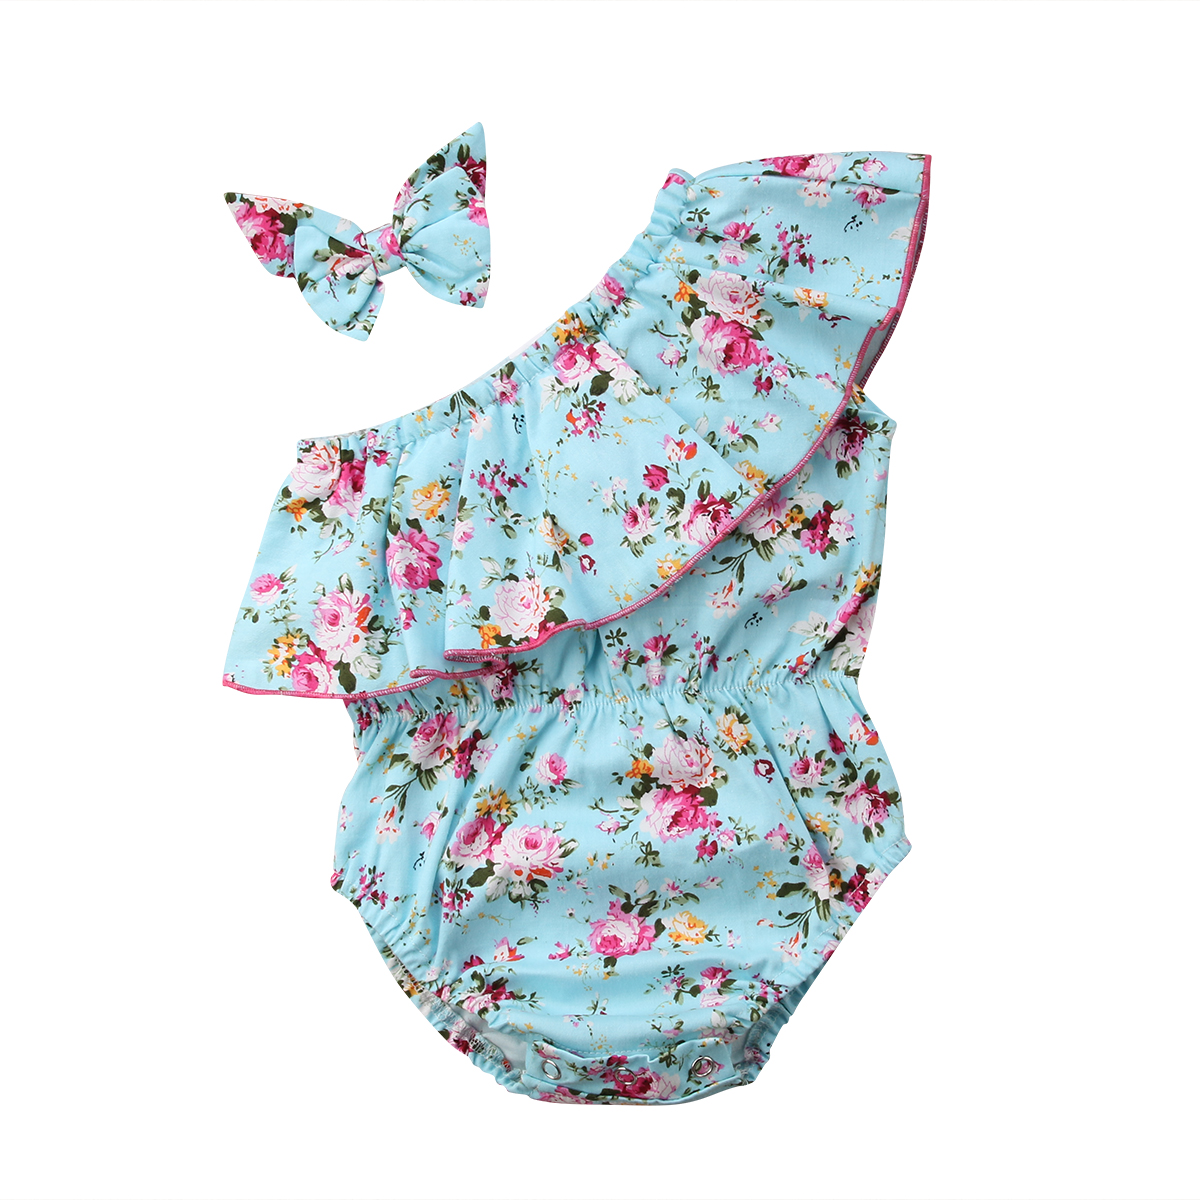 0-24M Summer Newborn Baby Girls Floral Romper Short Sleeve Jumpsuit +Bow Headband Sunsuit Outfits Set